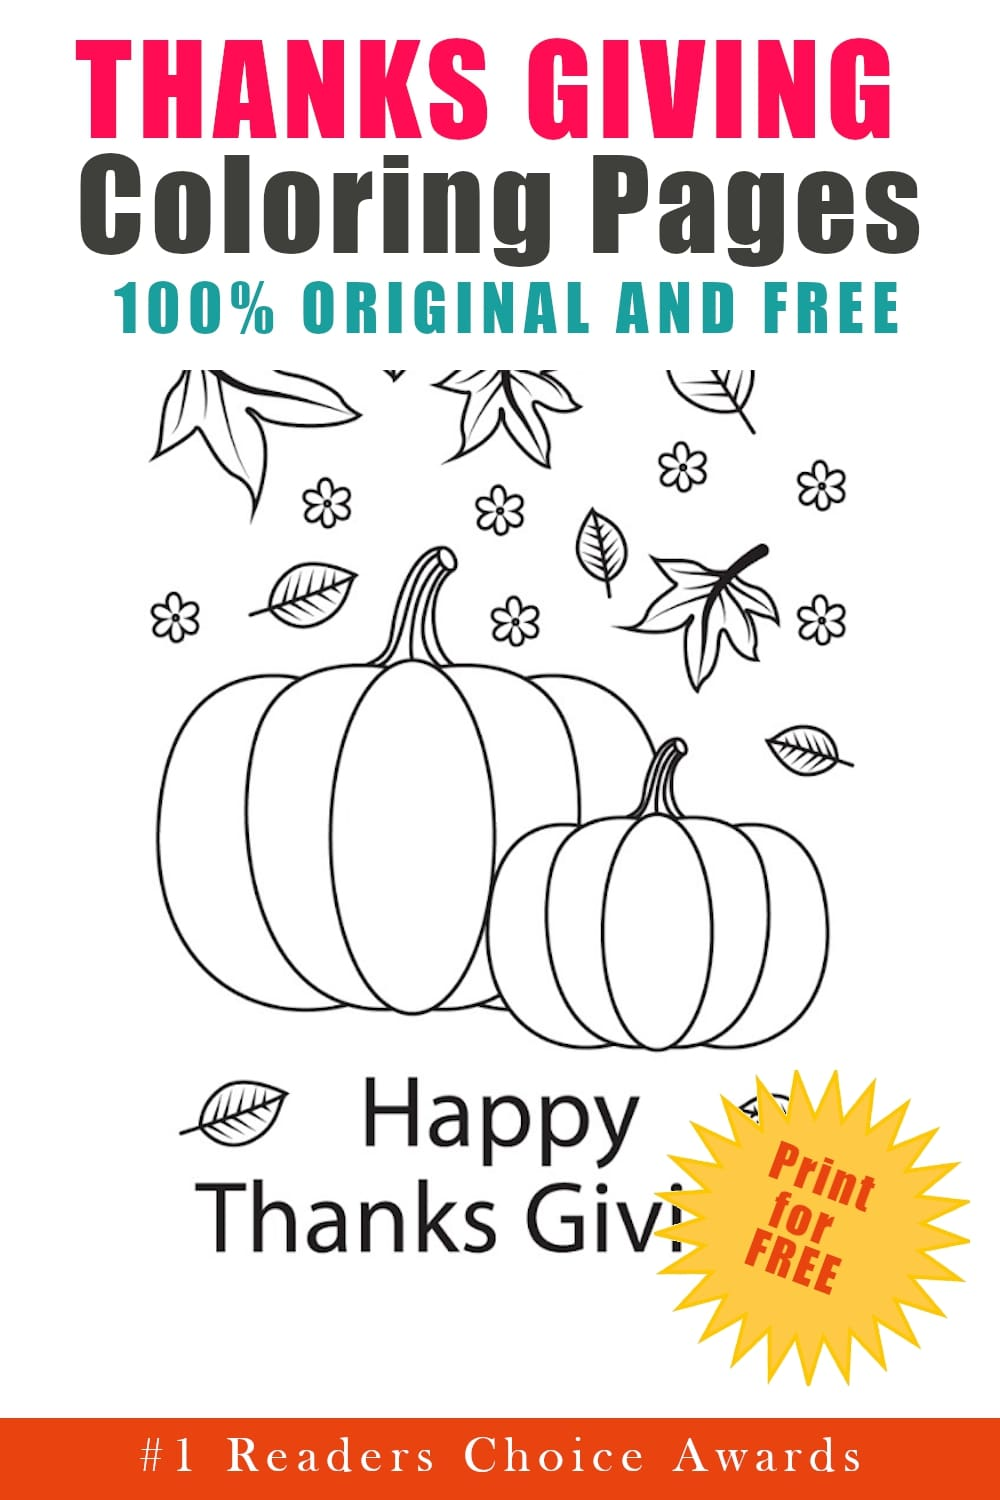 original and free thanksgiving coloring pages